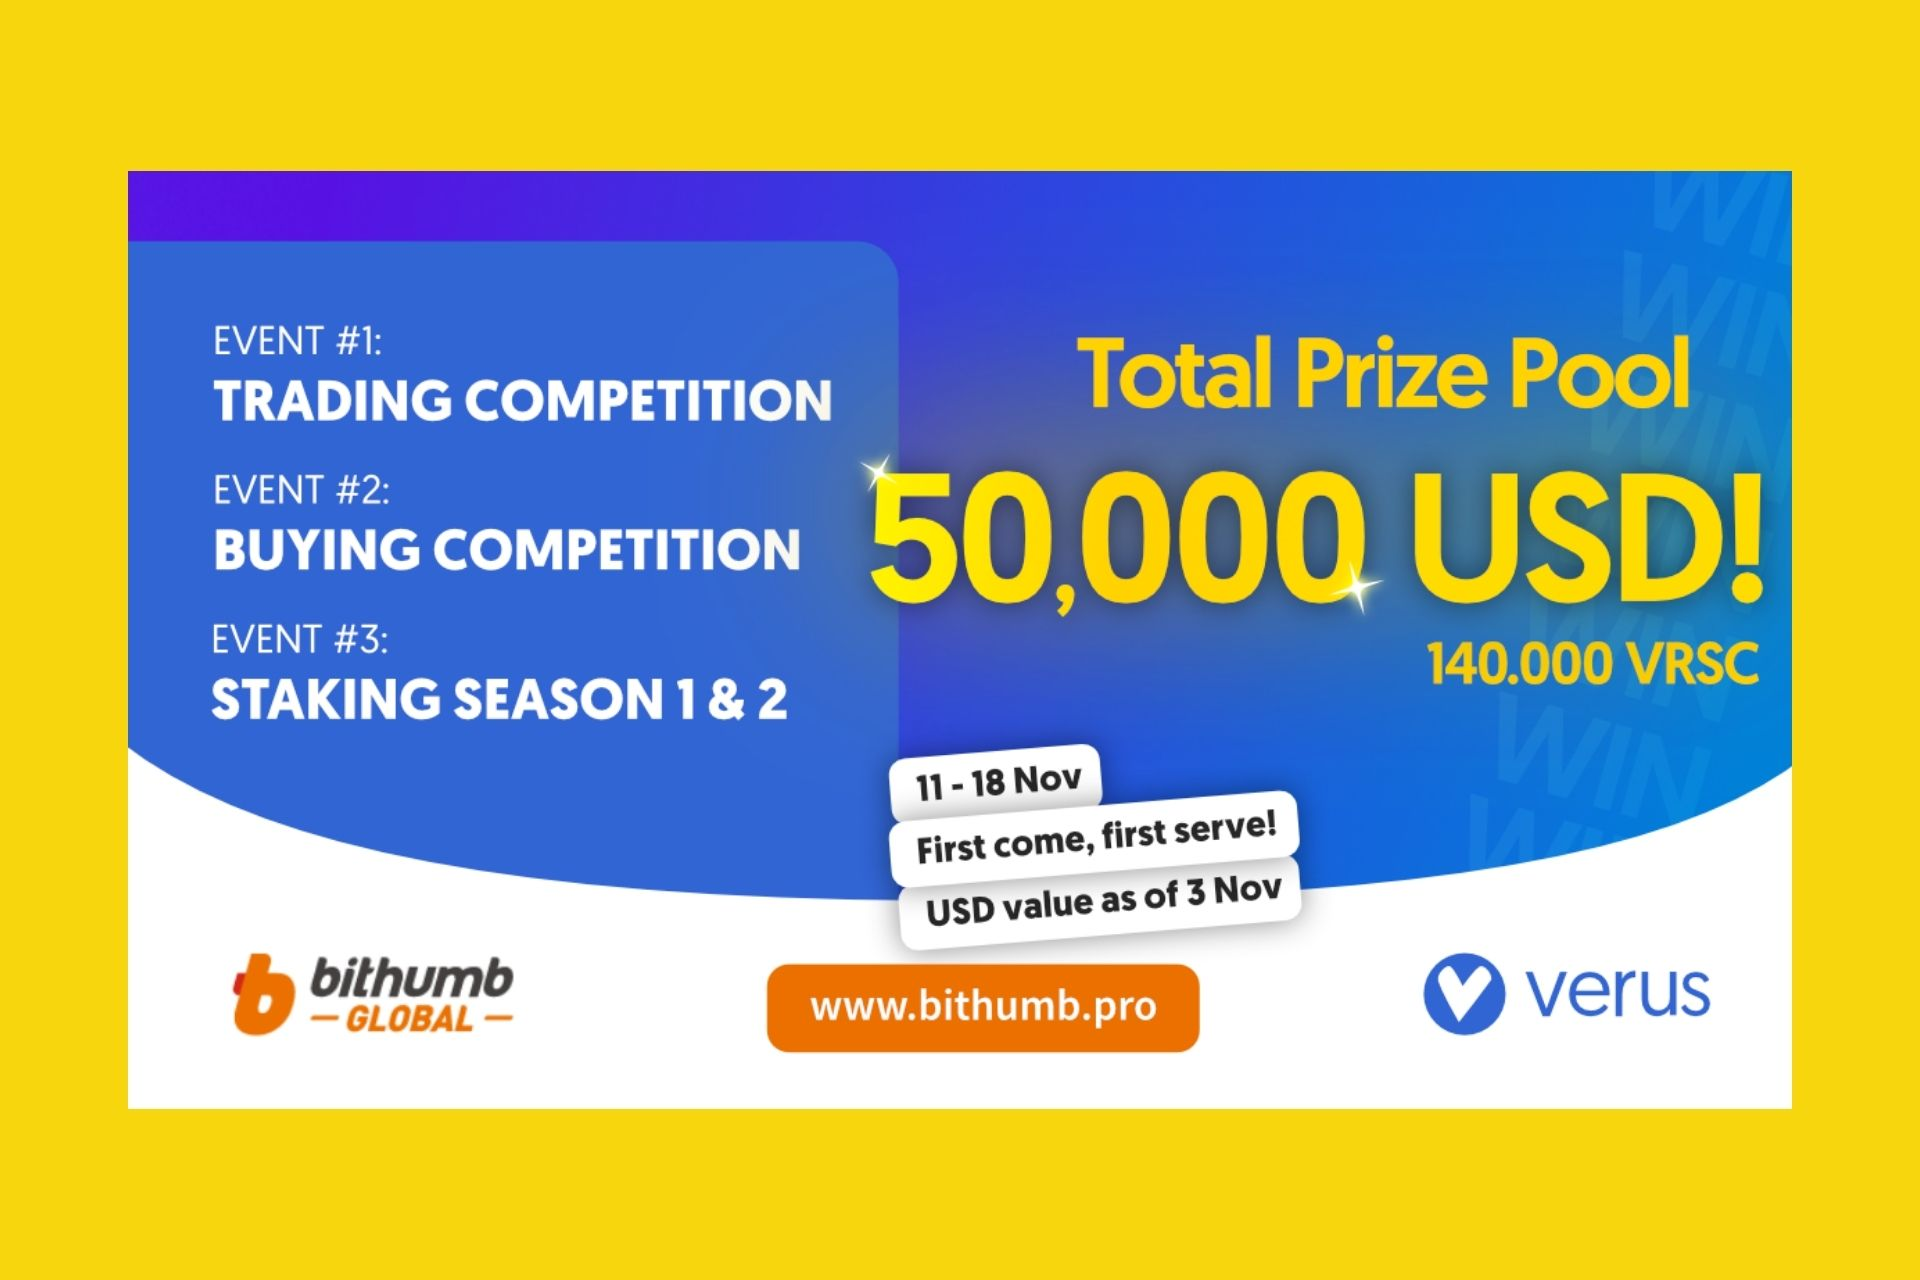 Verus Announces New Exchange Listing, Contests with 140,000 VRSC in Prizes, AMA & Halving